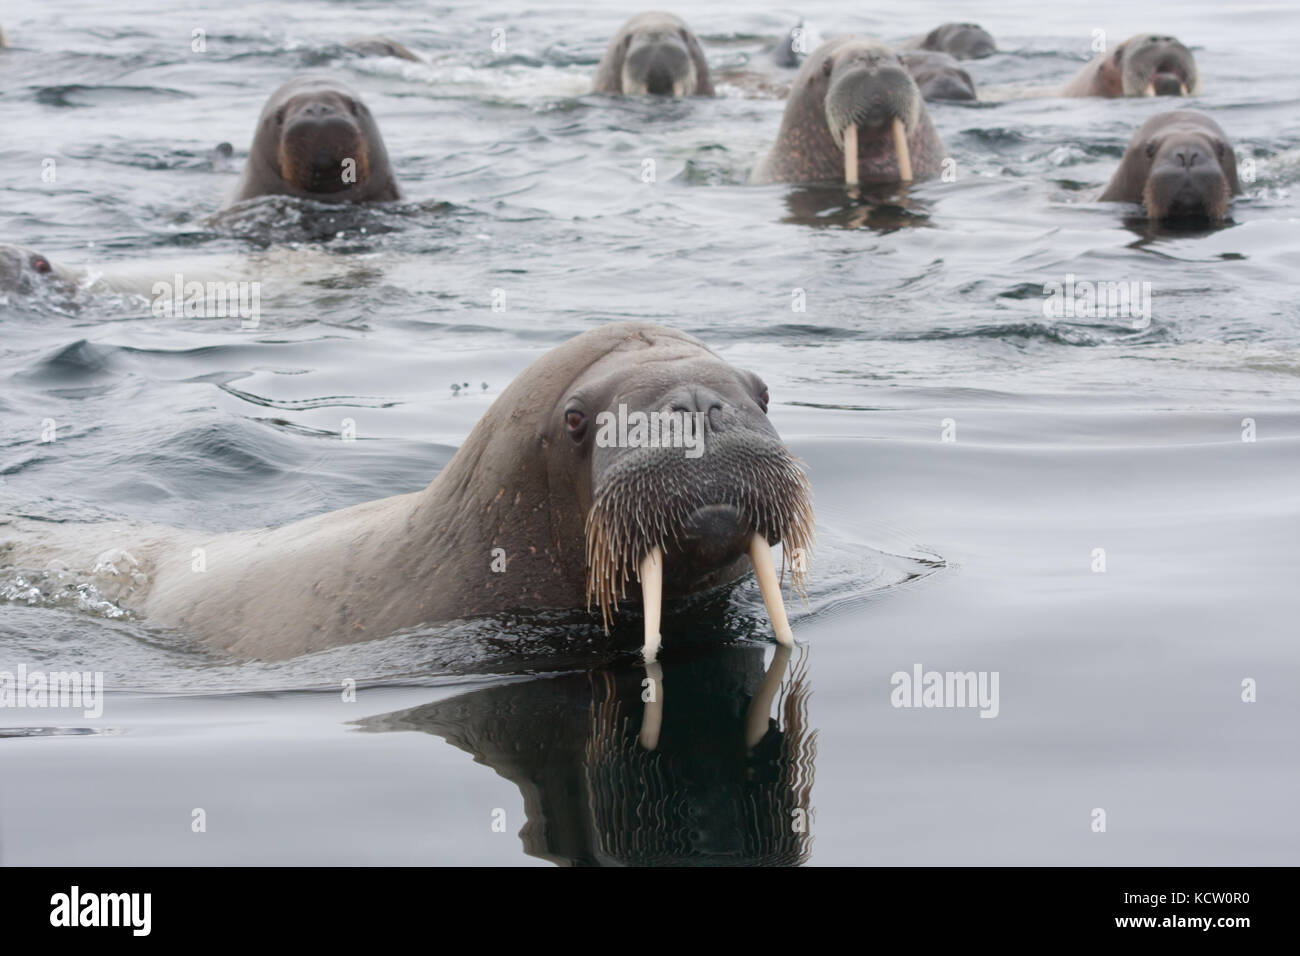 Group of Walrus (Odobenus rosmarus) swimming - Stock Image